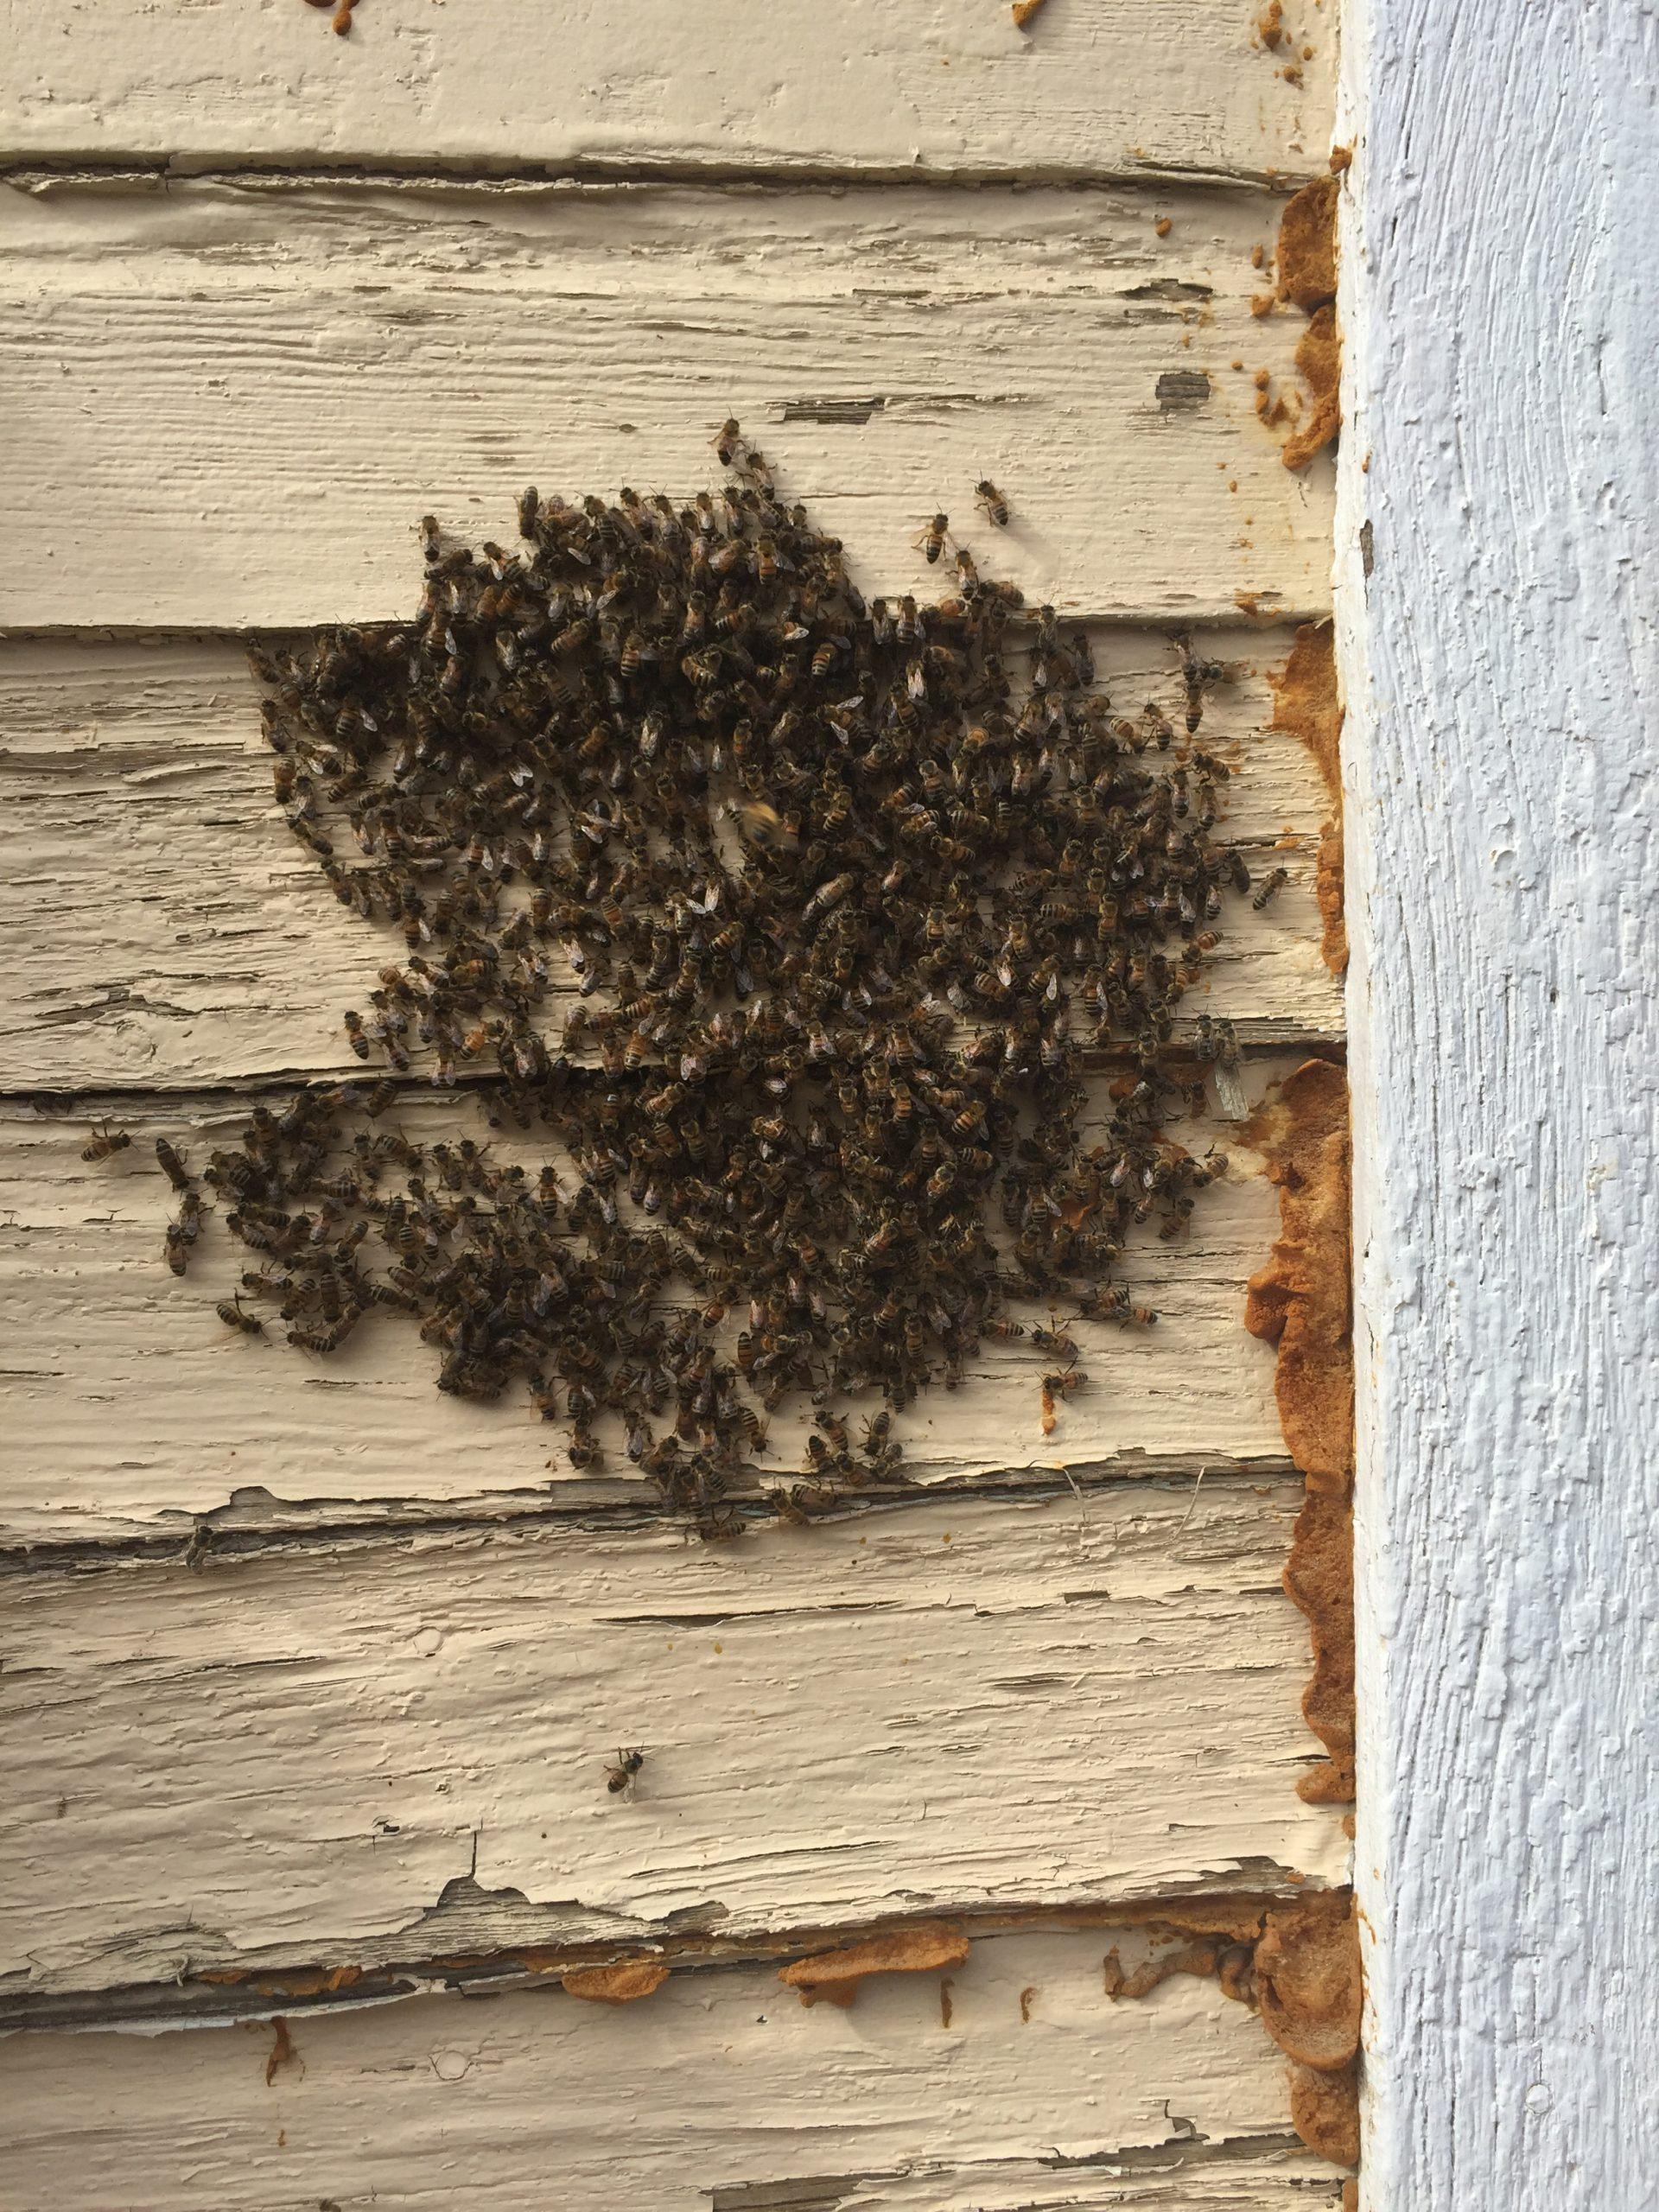 Feral honeybees entering and exiting a hive through the exterior wall of Olympia and Fletcher Holiday.